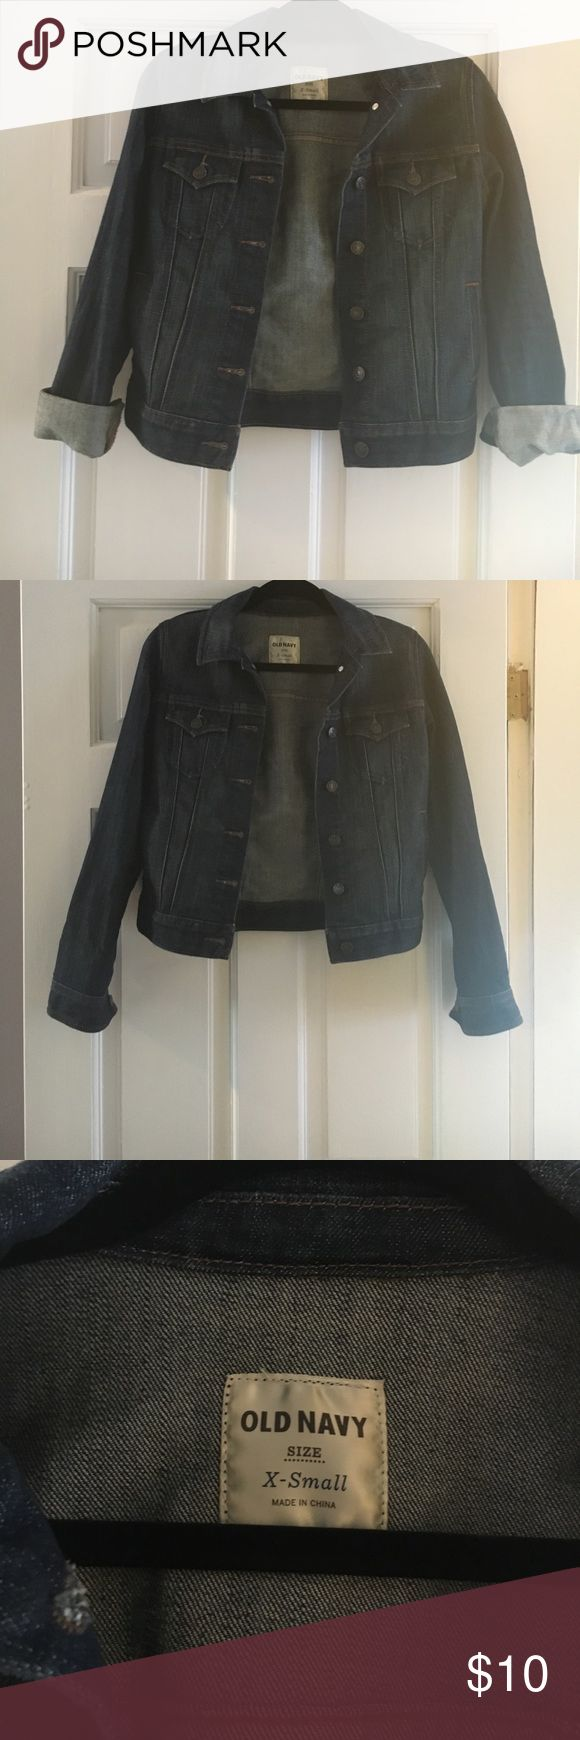 Old navy jean jacket Old navy jean jacket. Great condition Old Navy Jackets & Coats Jean Jackets